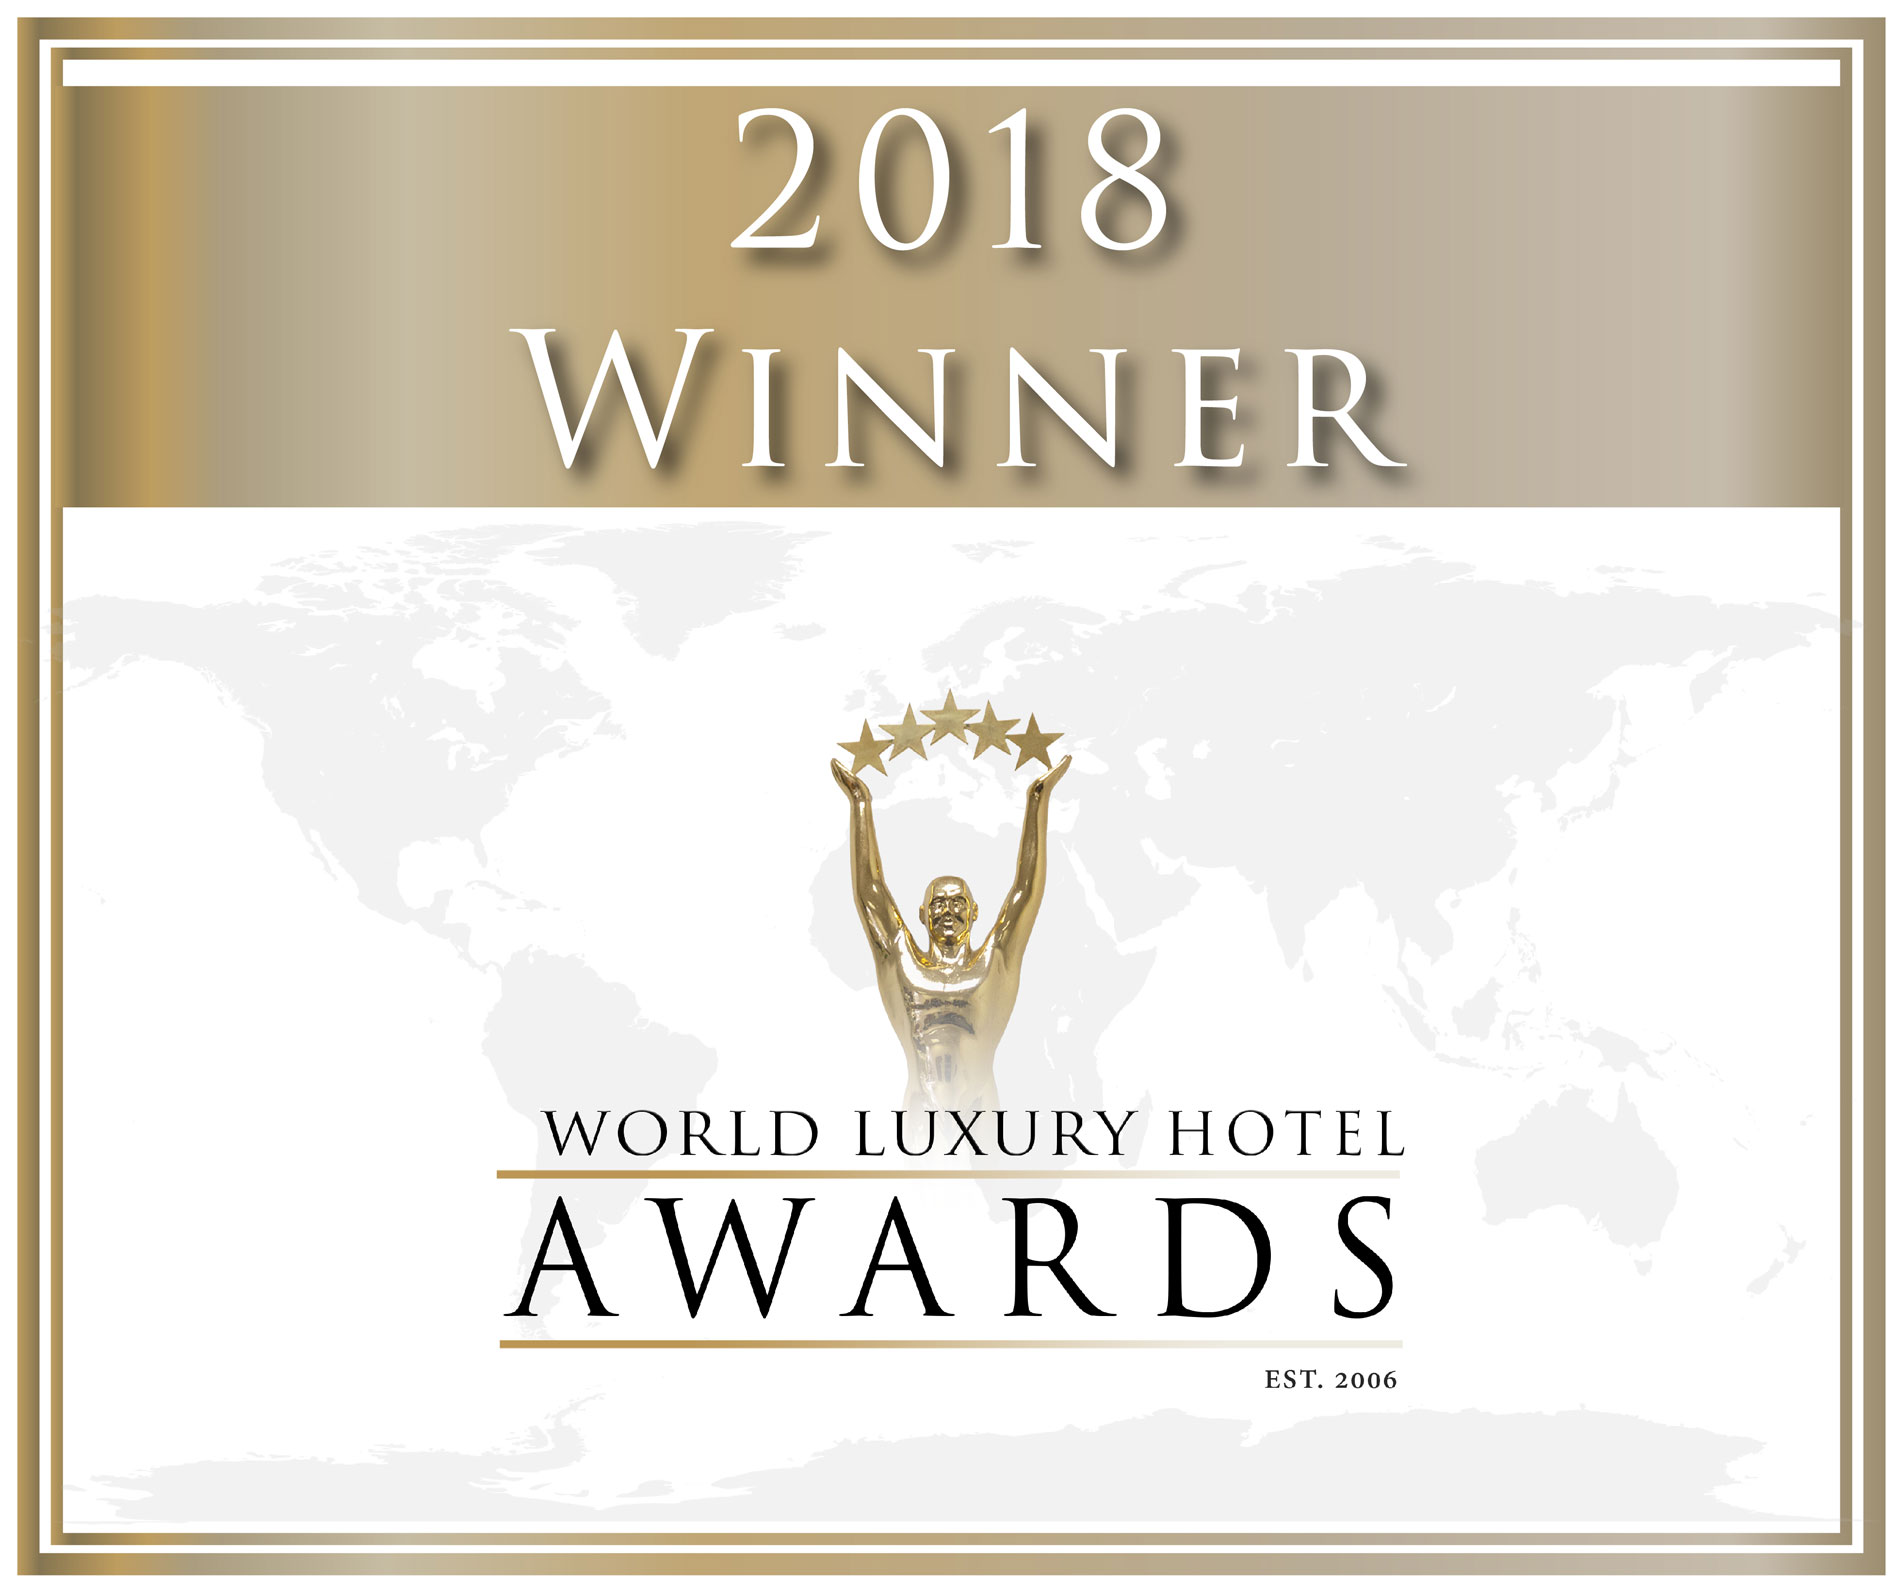 St Raphael Resort 2018 World Luxury Hotel Awards Winner!